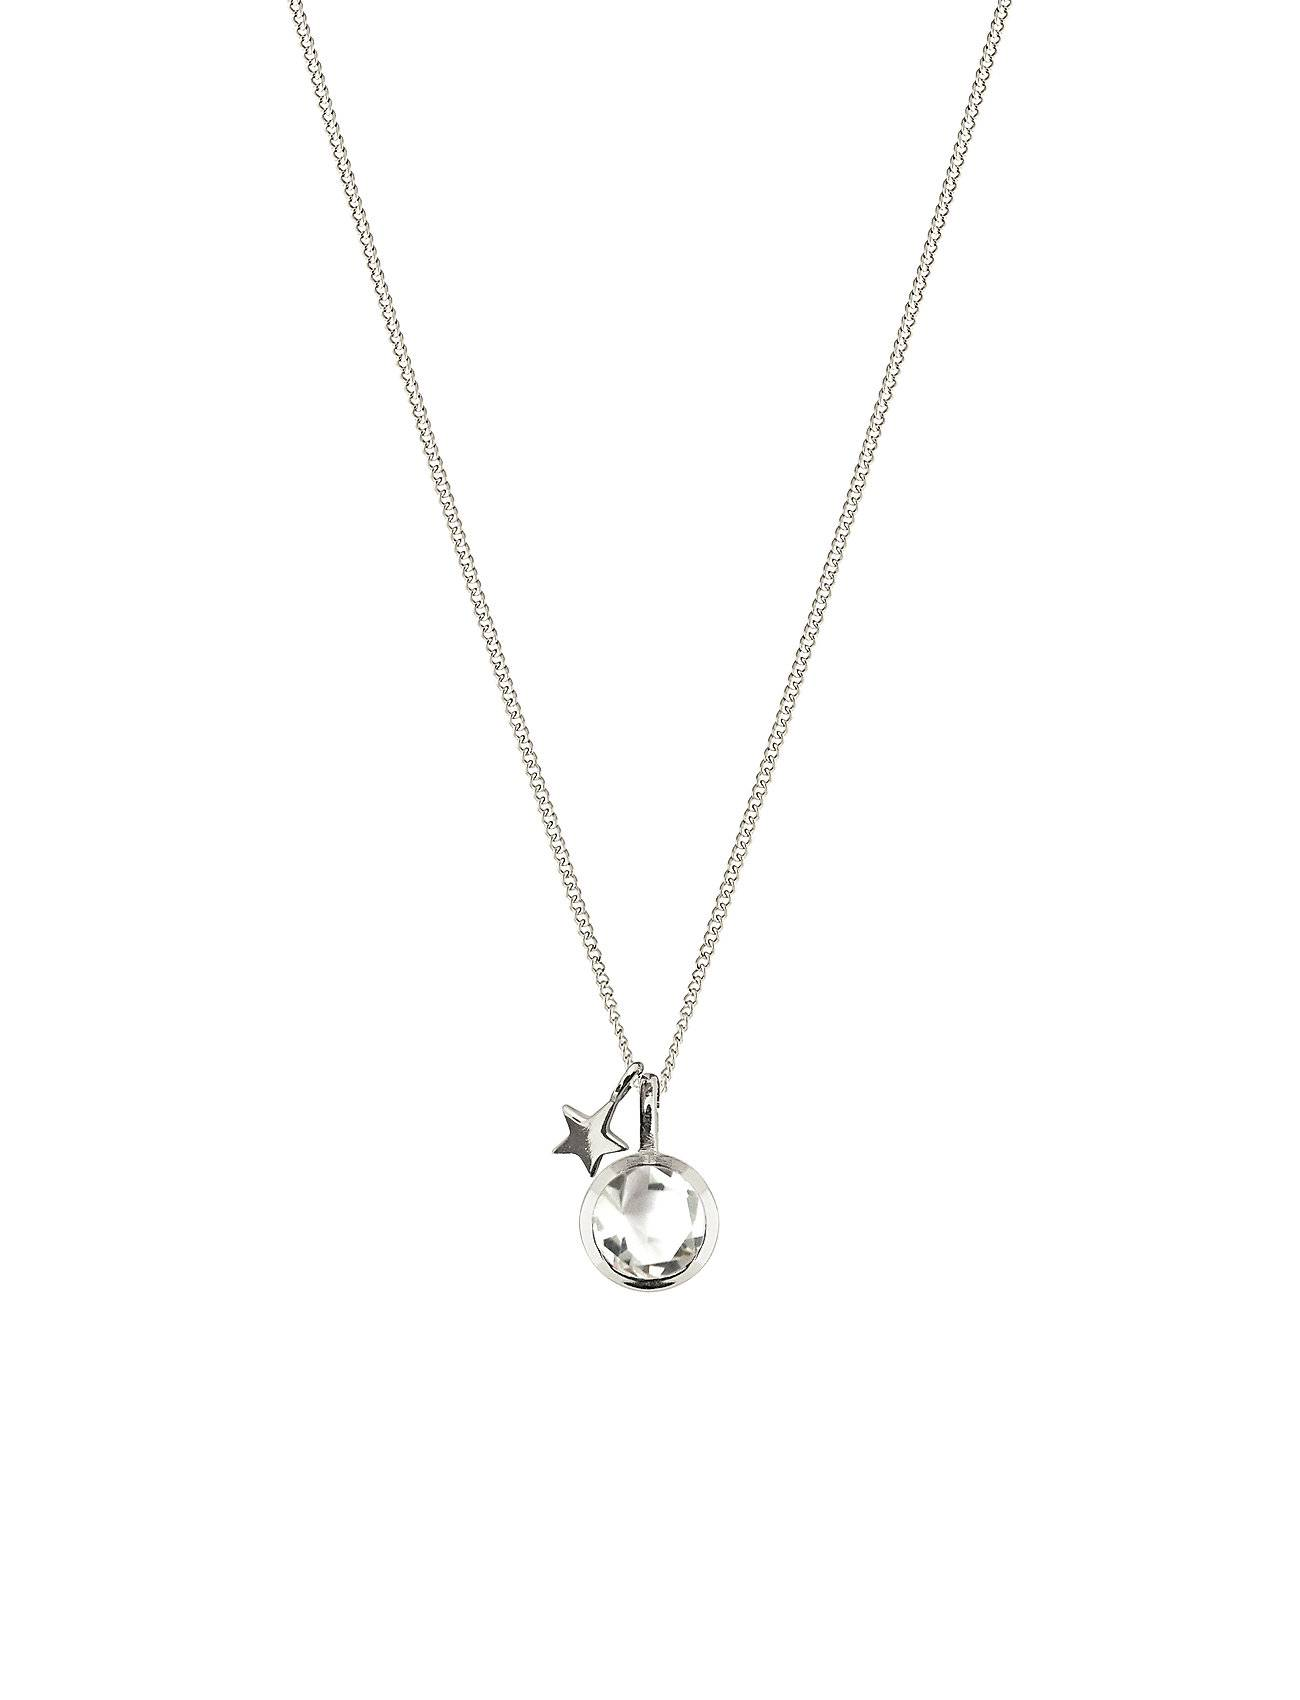 Syster P Priscilla Necklace Silver Crystal Accessories Jewellery Necklaces Dainty Necklaces Hopea Syster P